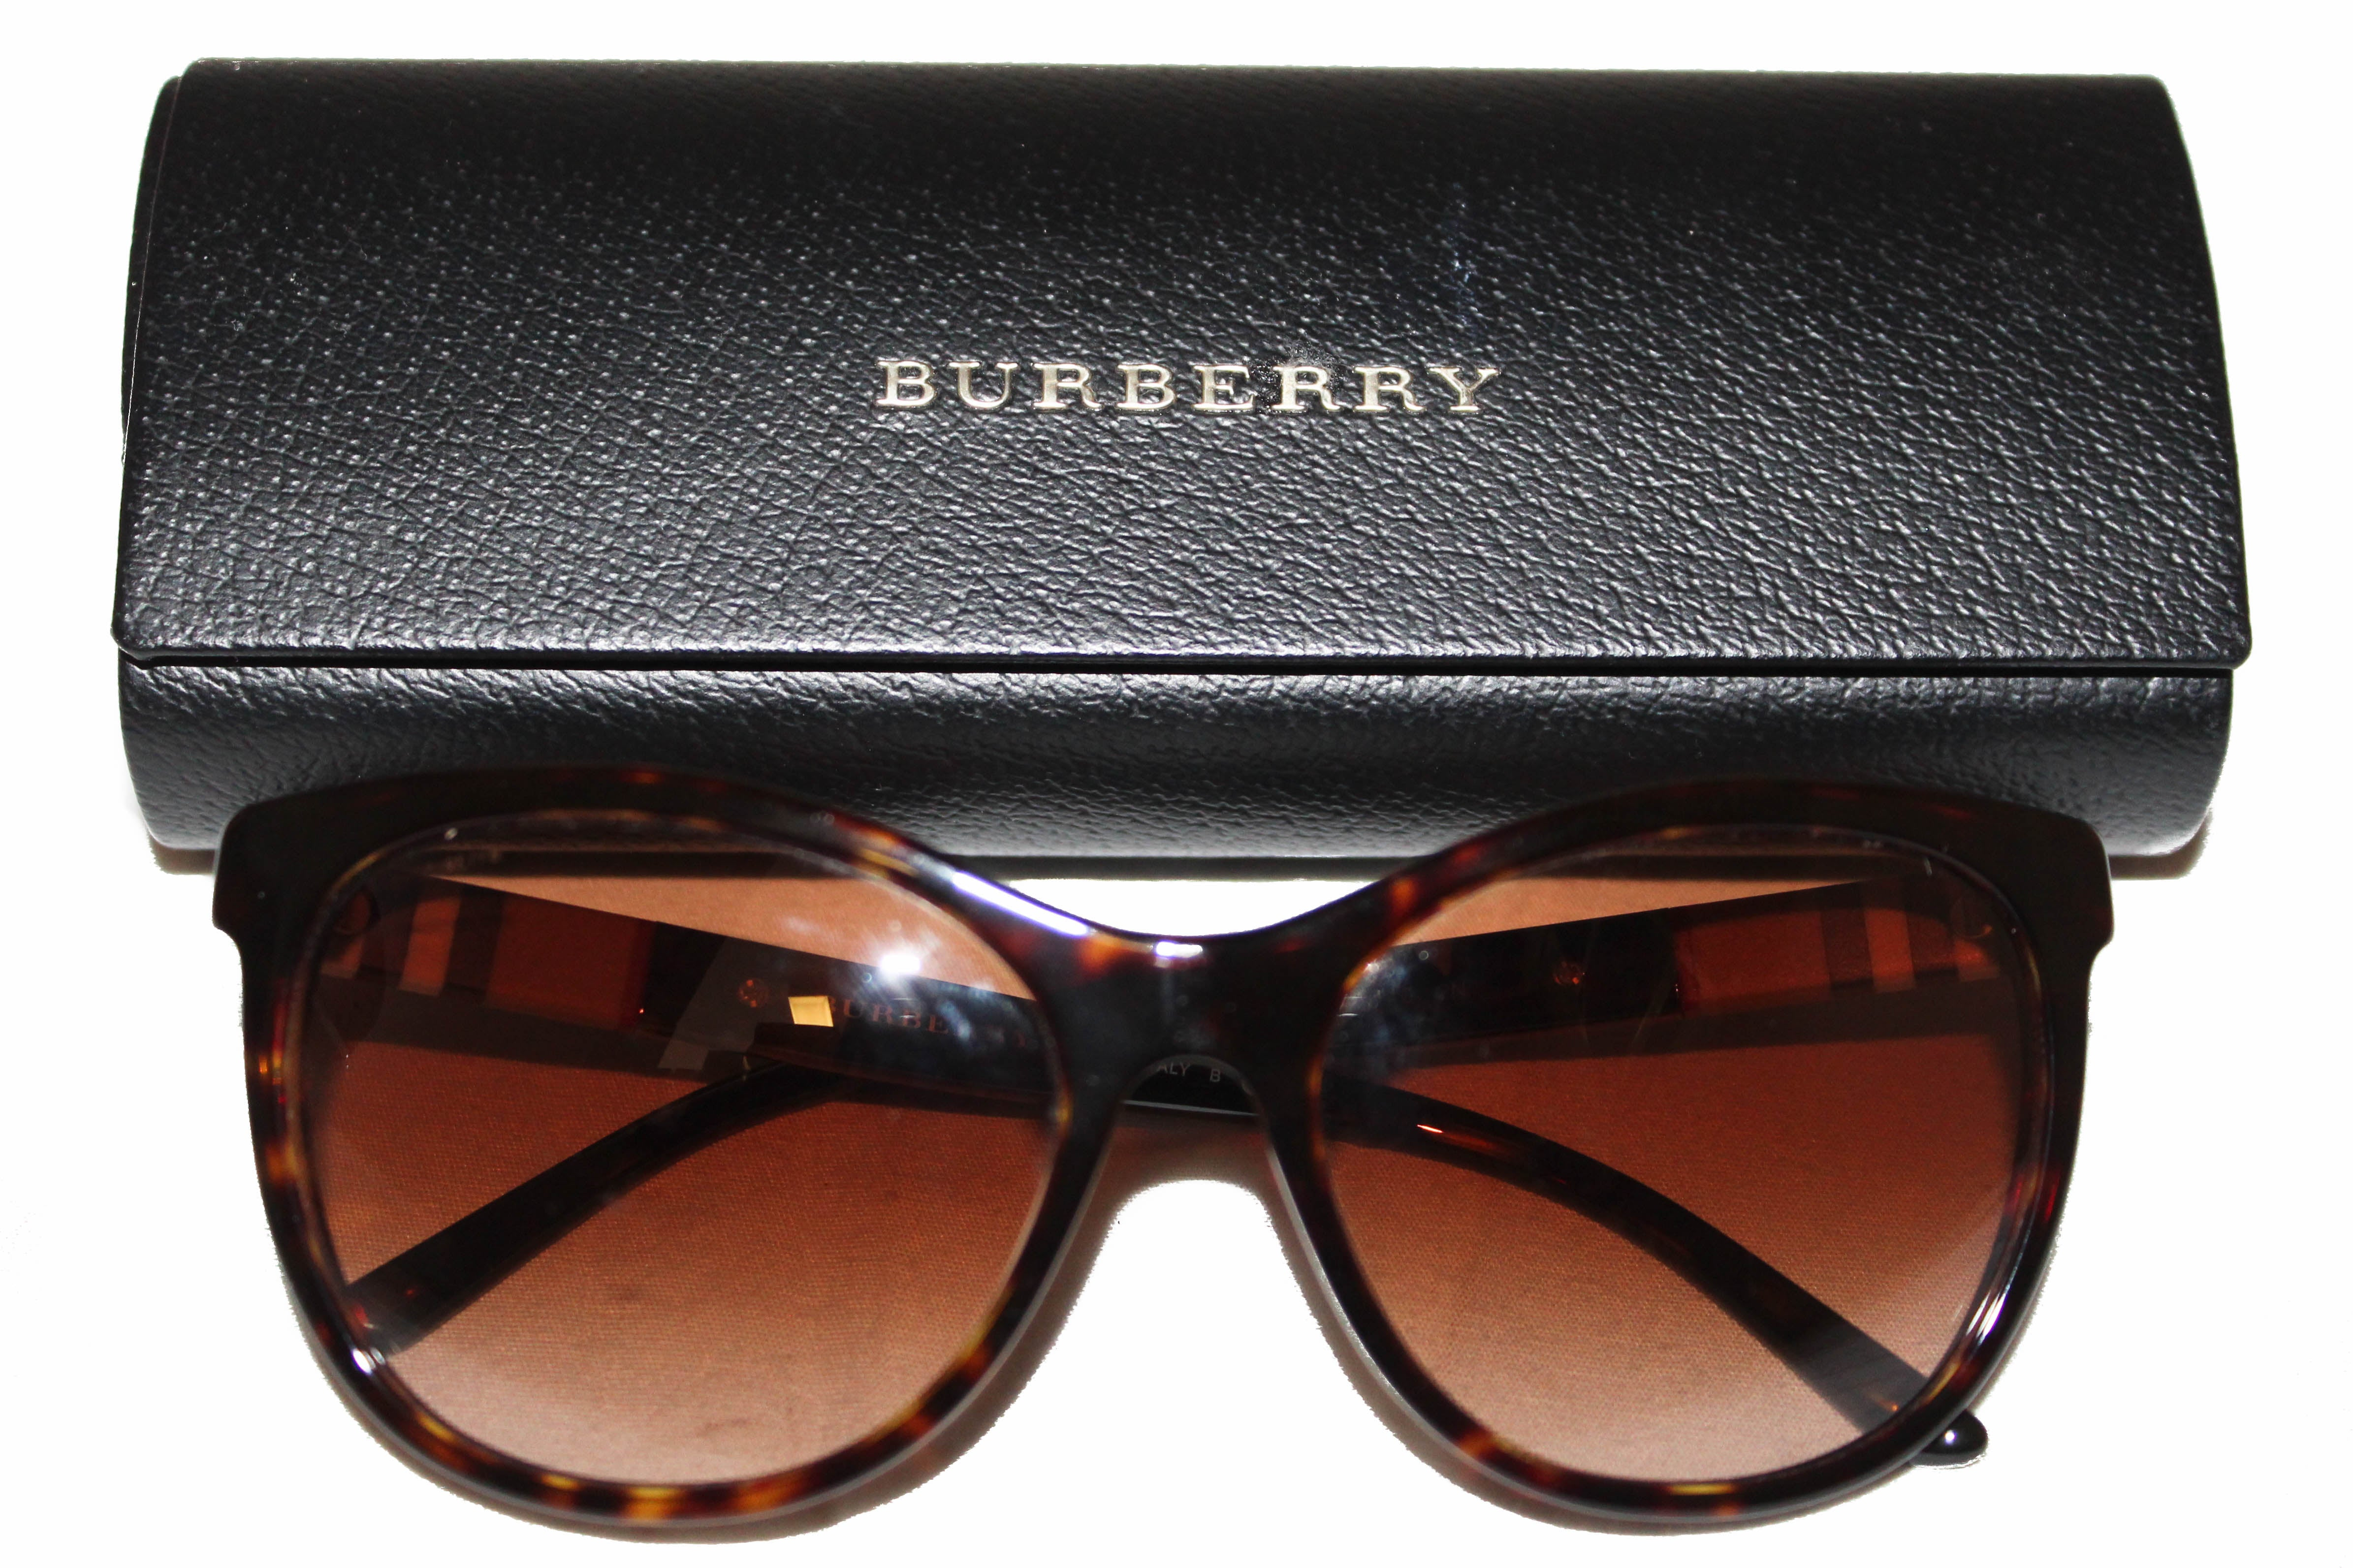 Authentic Burberry Brown Plastic Frame Sunglasses B4199